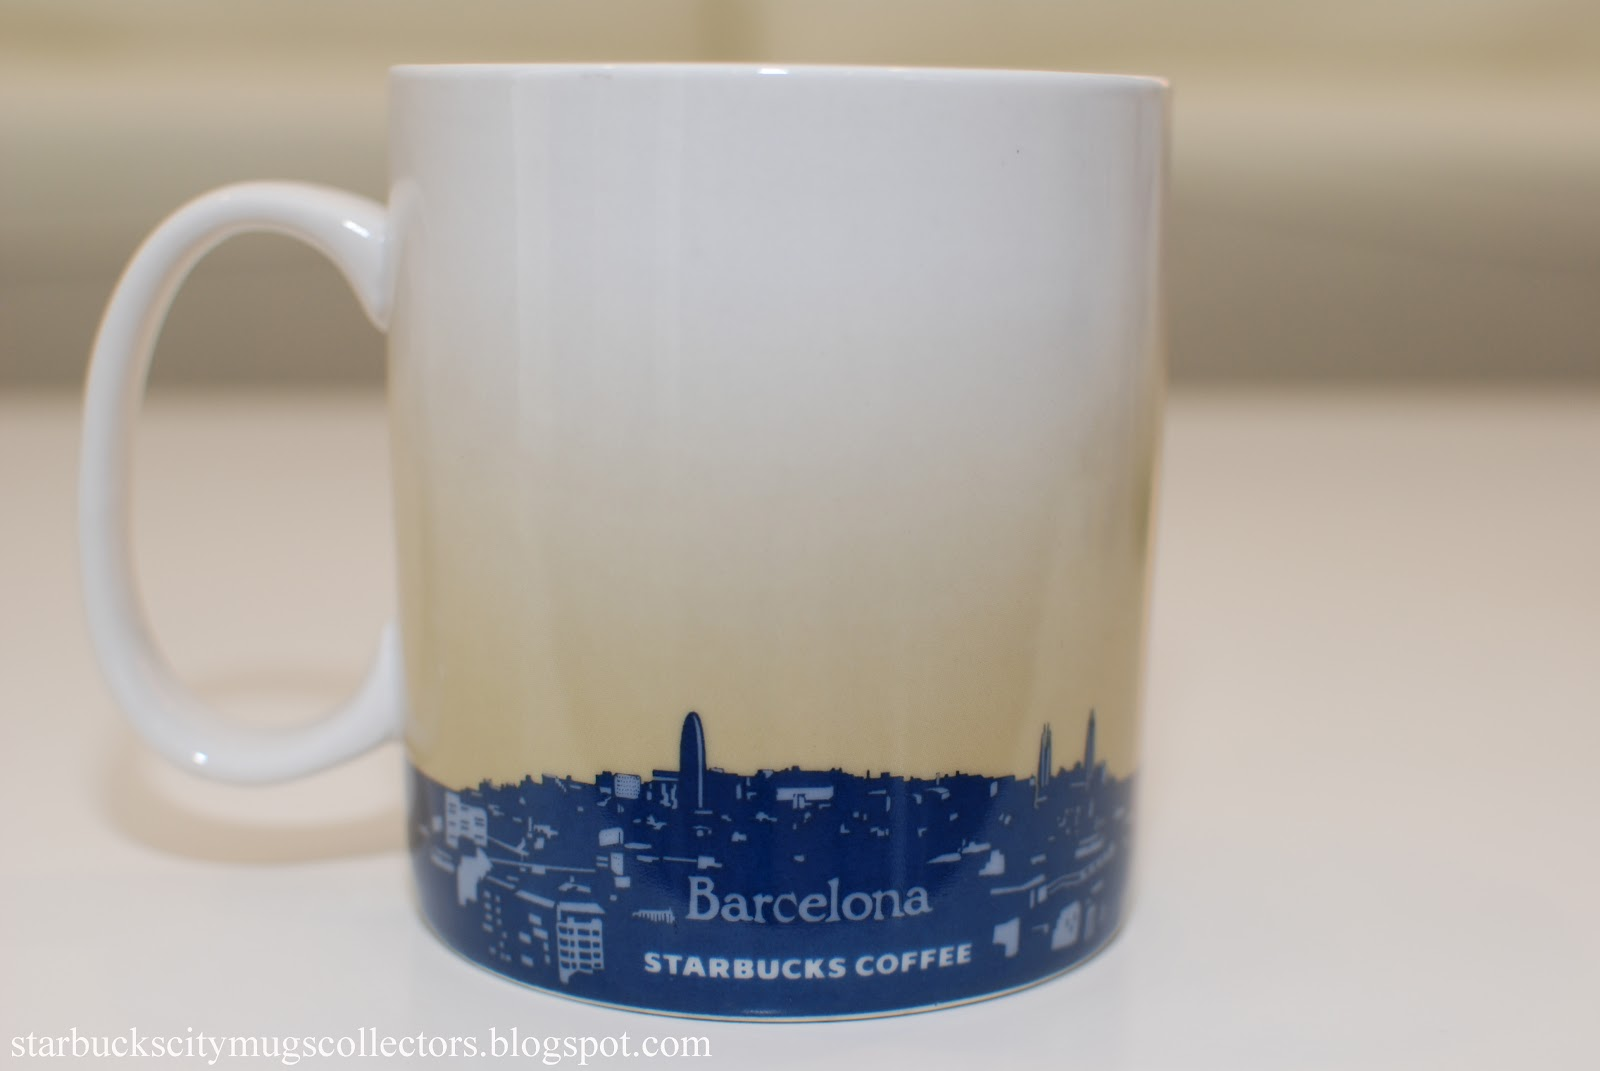 Icon Starbucks City City Mug Mug Icon Starbucks City Starbucks MugsBarcelona MugsBarcelona 3L4RqjcA5